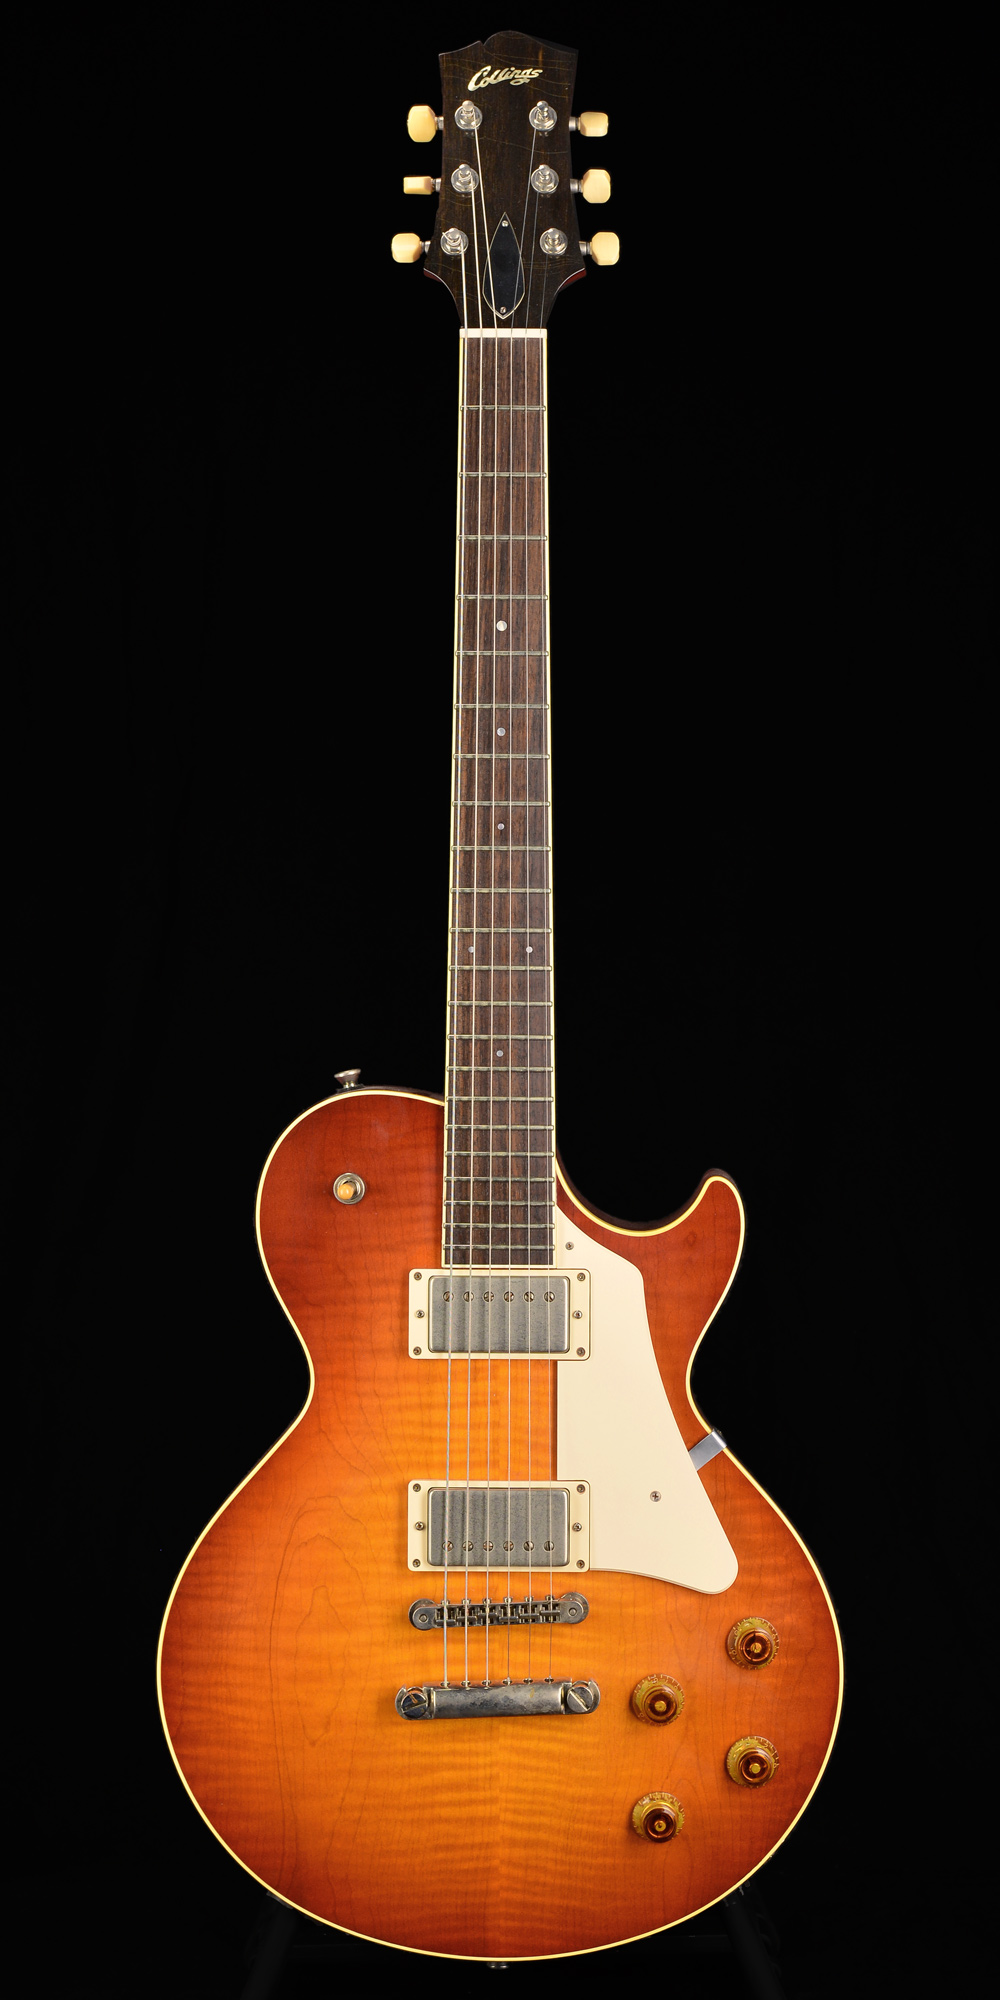 Photo of Collings City Limits - Aged Finish  Aged Amber Sunburst